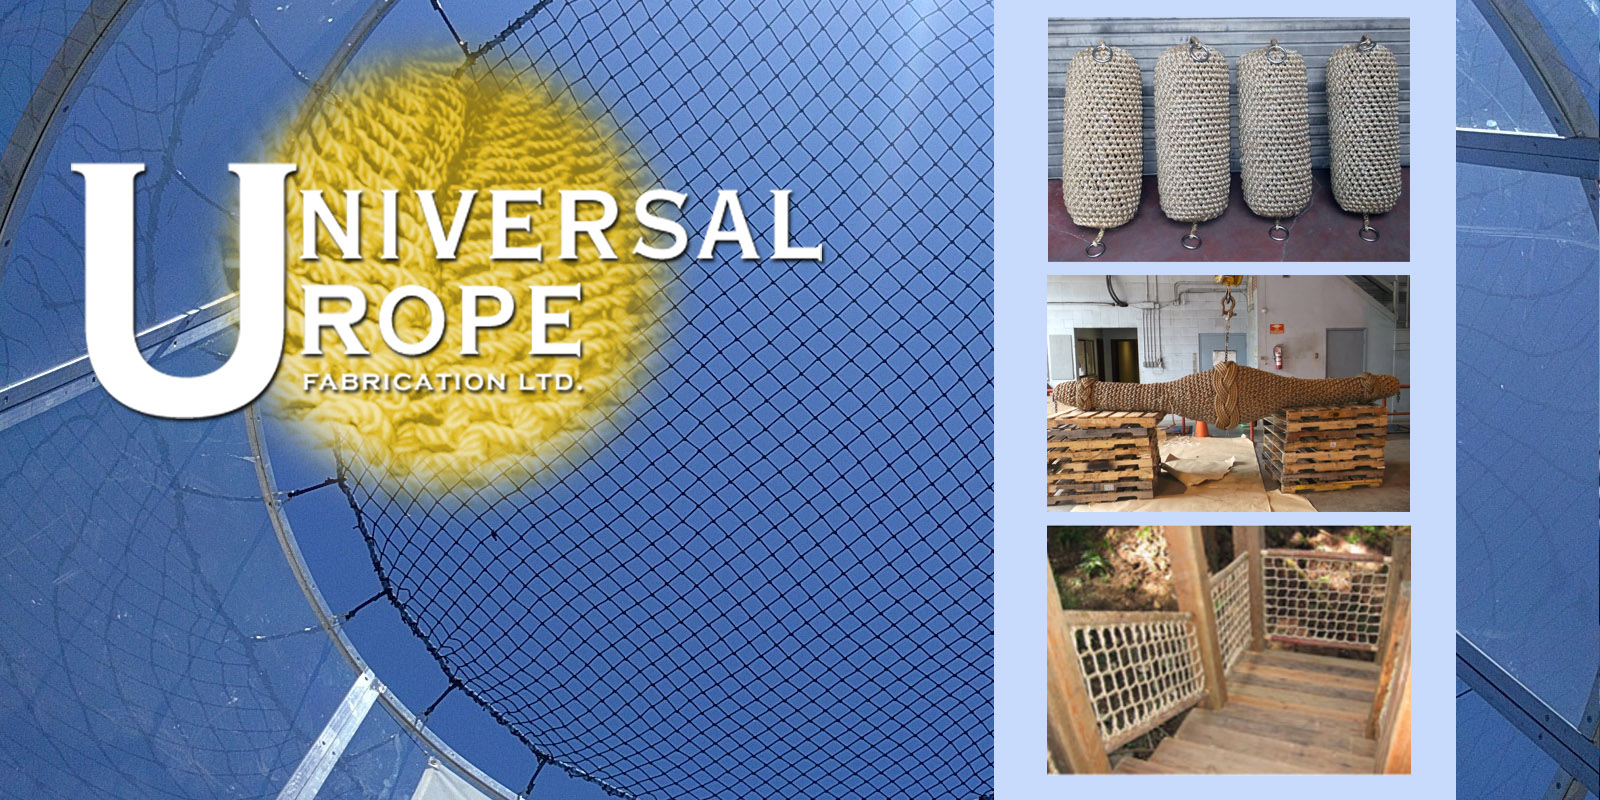 Universal Rope launches new website